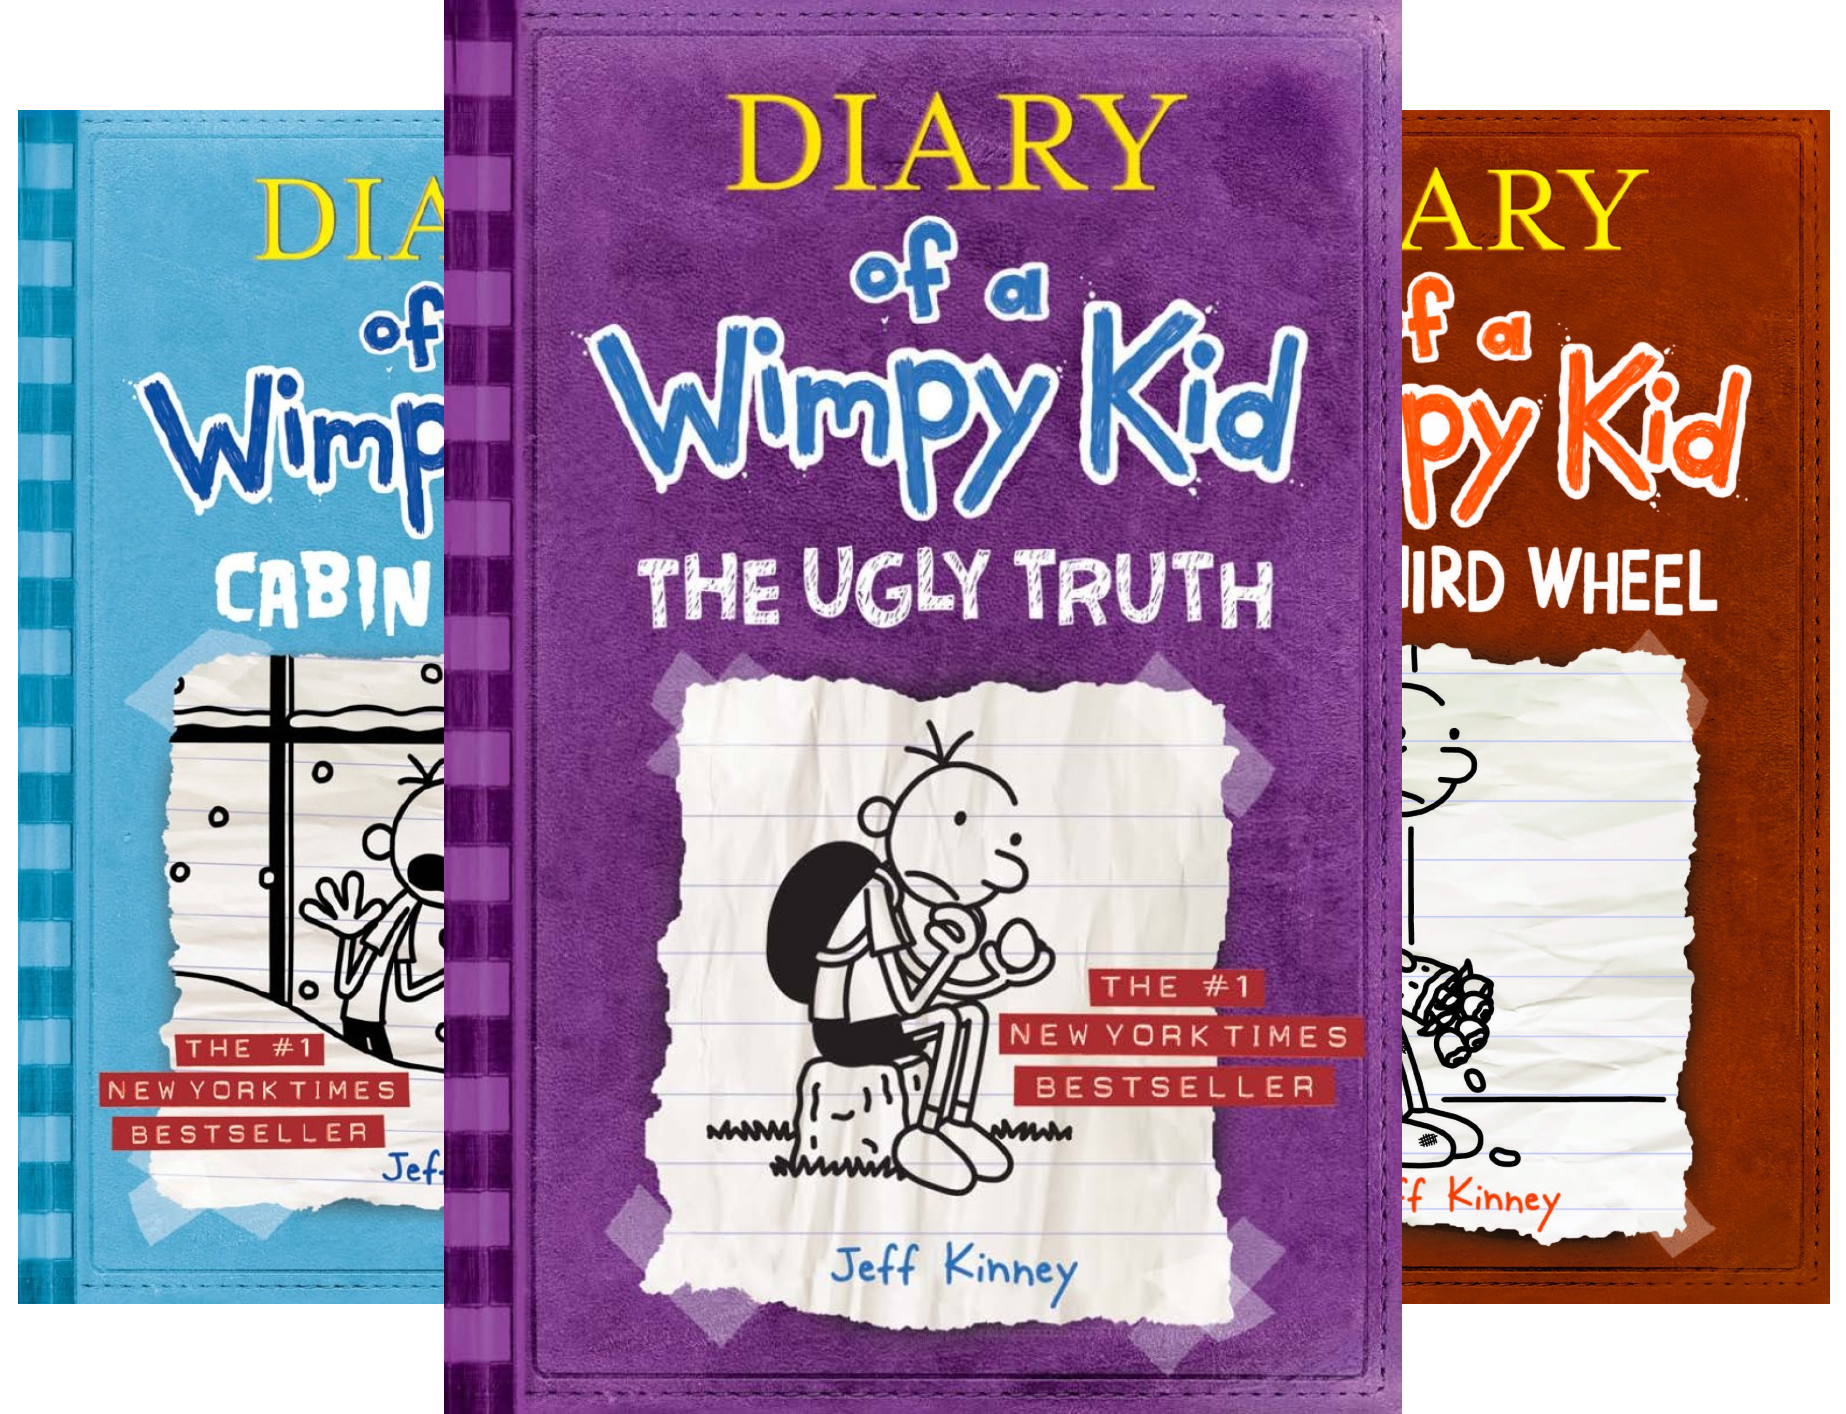 Diary of a Wimpy Kid Books 5-8